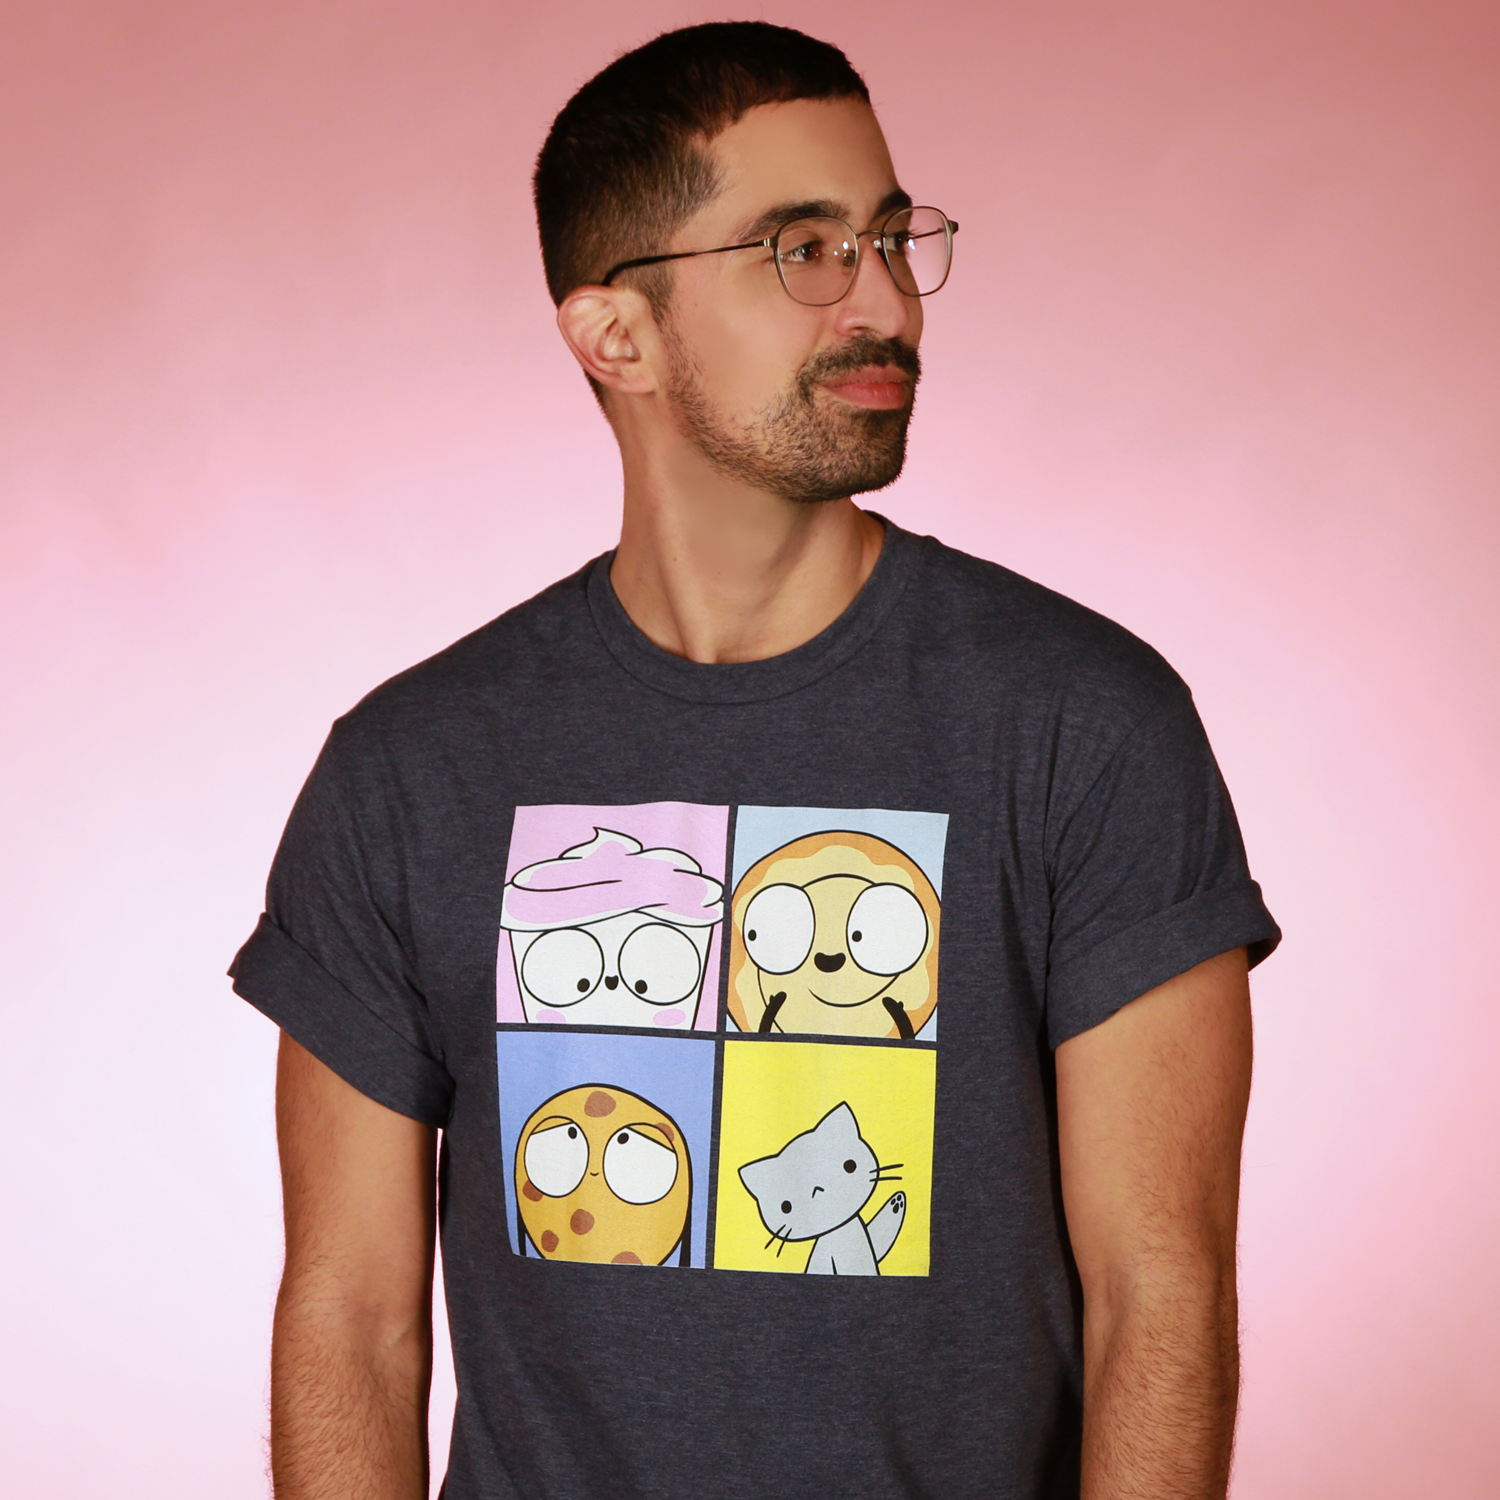 A photograph of a man in a T-shirt featuring characters from the Good Advice Cupcake brand.